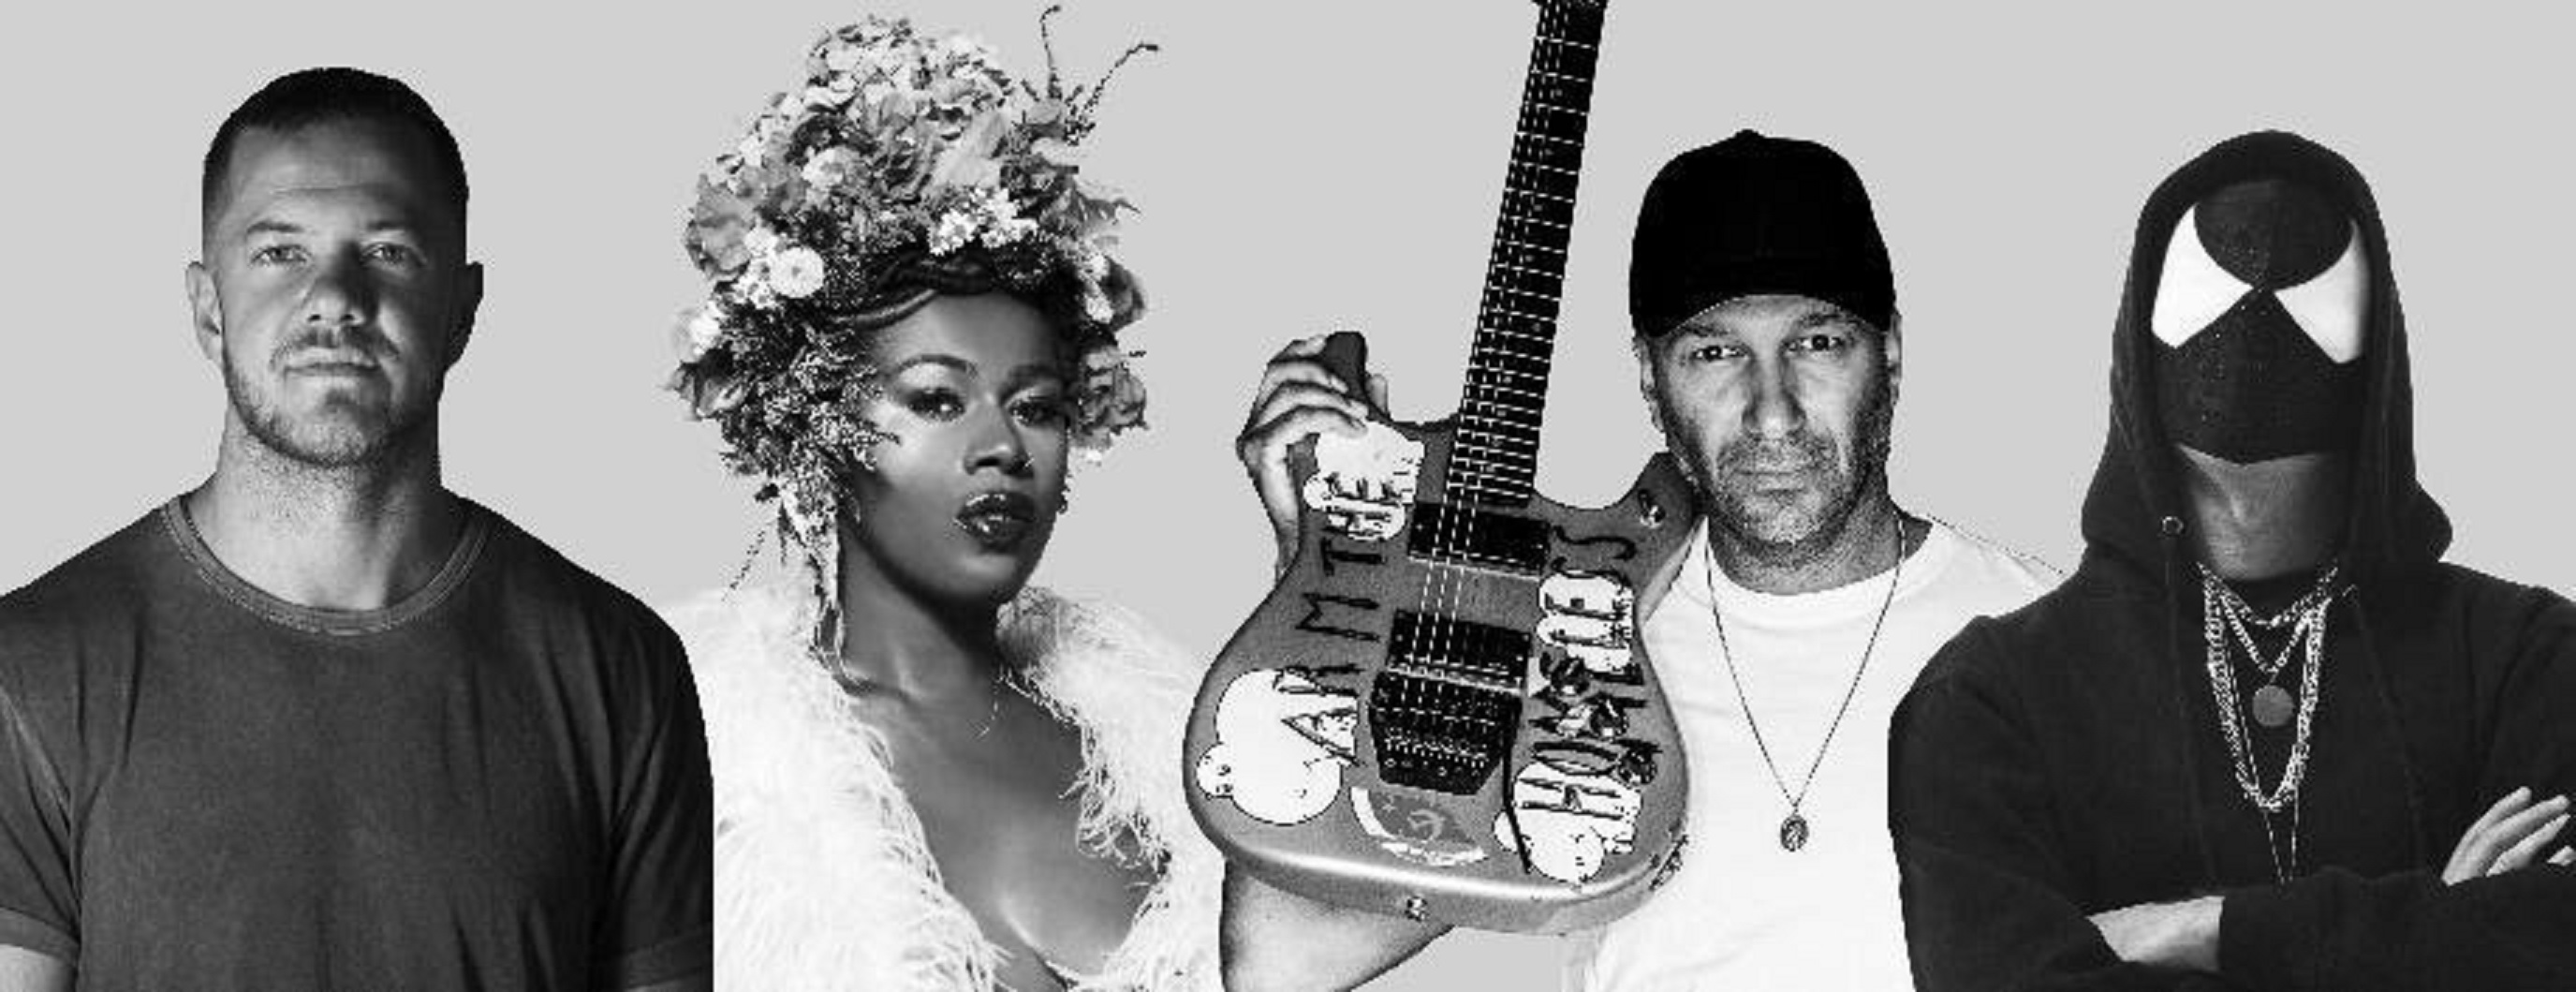 "Tom Morello x Shea Diamond x Dan Reynolds x The Bloody Beetroots Single ""Stand Up"" Out Now"